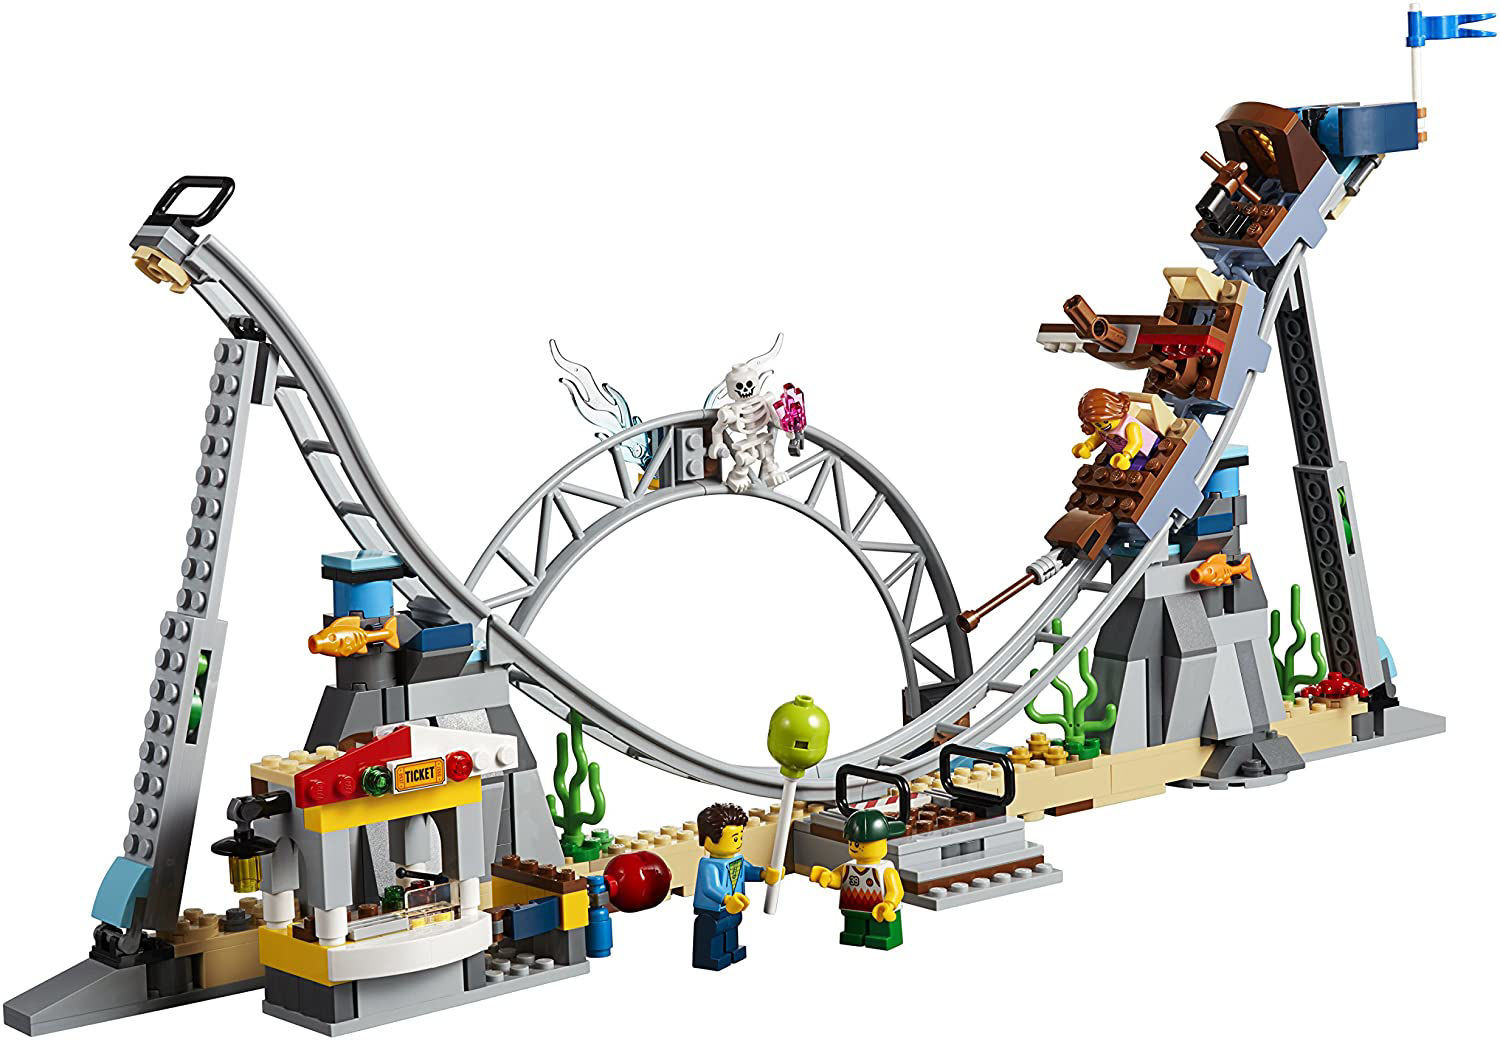 Picture of Pirate Roller Coaster